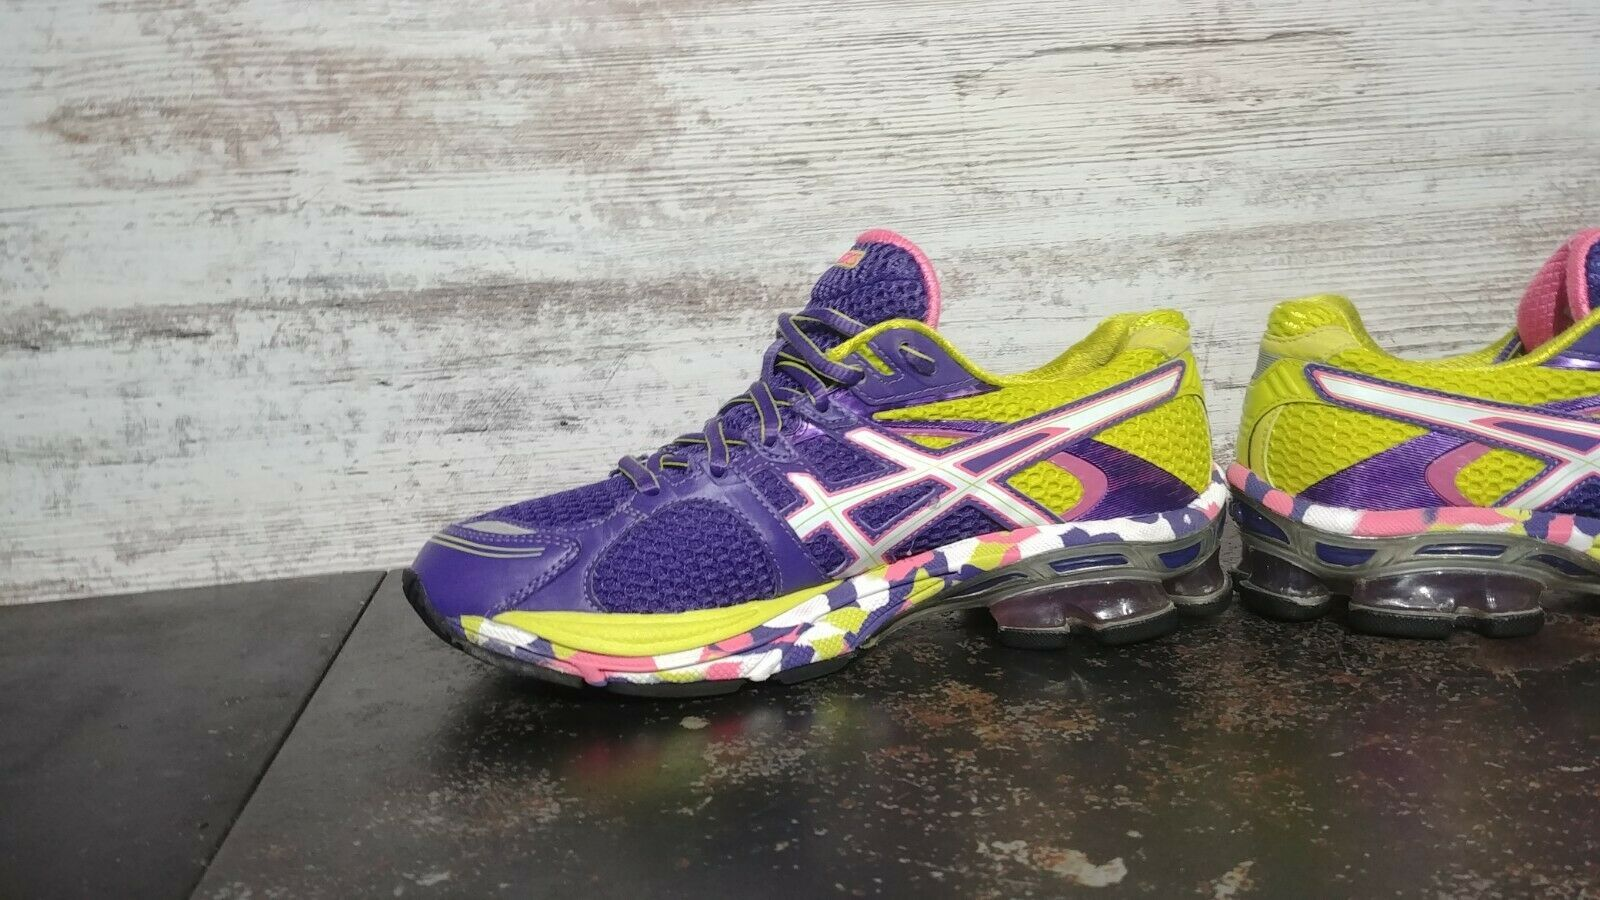 Womens Asics Gel Sendai Running Shoes SZ 6.5 37.5 Used T36DQ Sneakers Trainers image 5